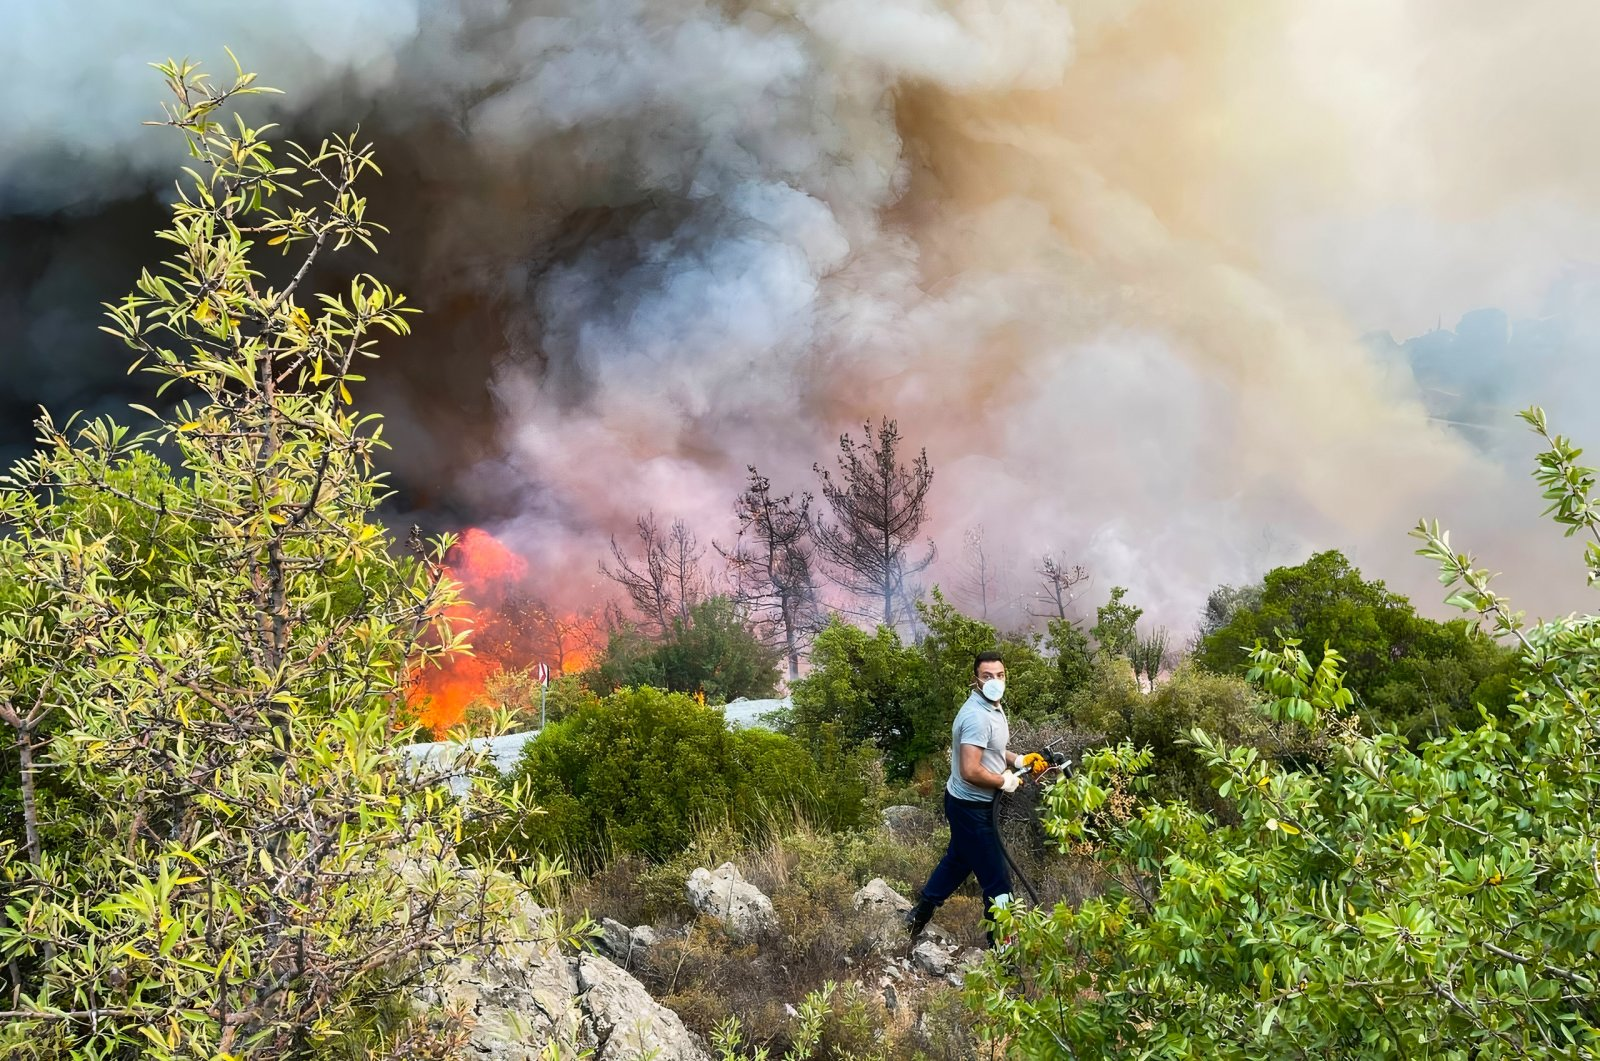 Flames and smoke raise from a wildfire in Ören, in the holiday region of Muğla, southwestern Turkey, Aug. 6, 2021. (IHA Photo)